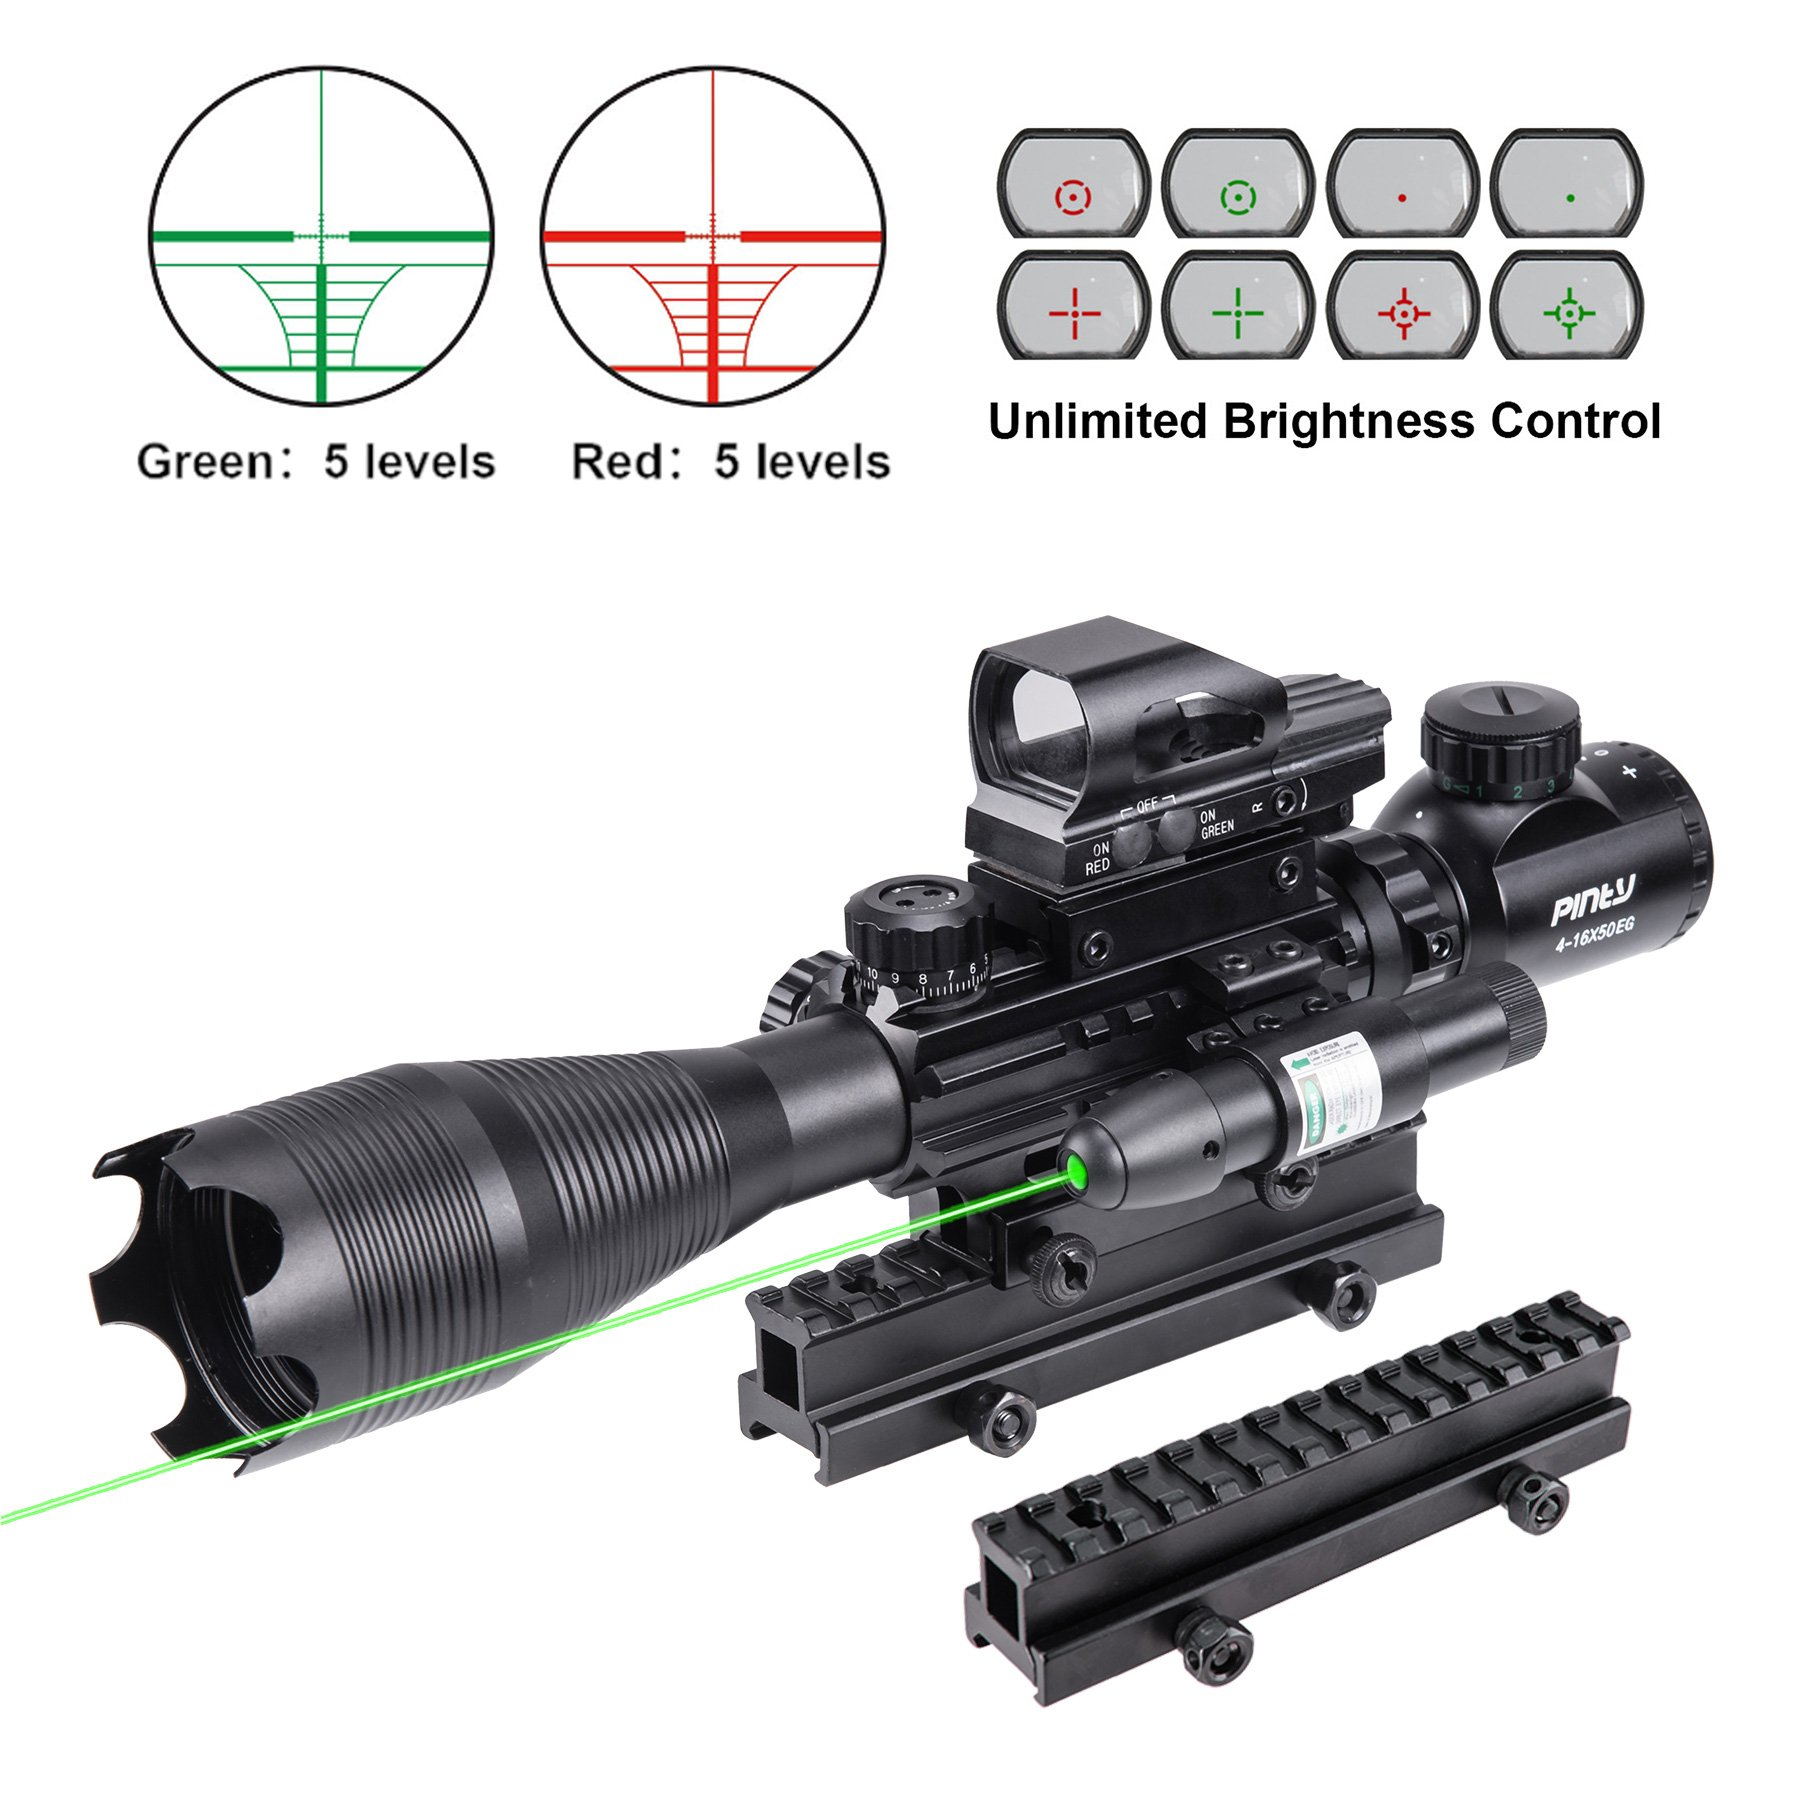 Pinty Rifle Scope 4-16X50 Illuminated Optics Sight Green Laser, Reflex Holographic Dot Sight, Riser Mount 14 Slots 1 inch High Riser Mount by Pinty